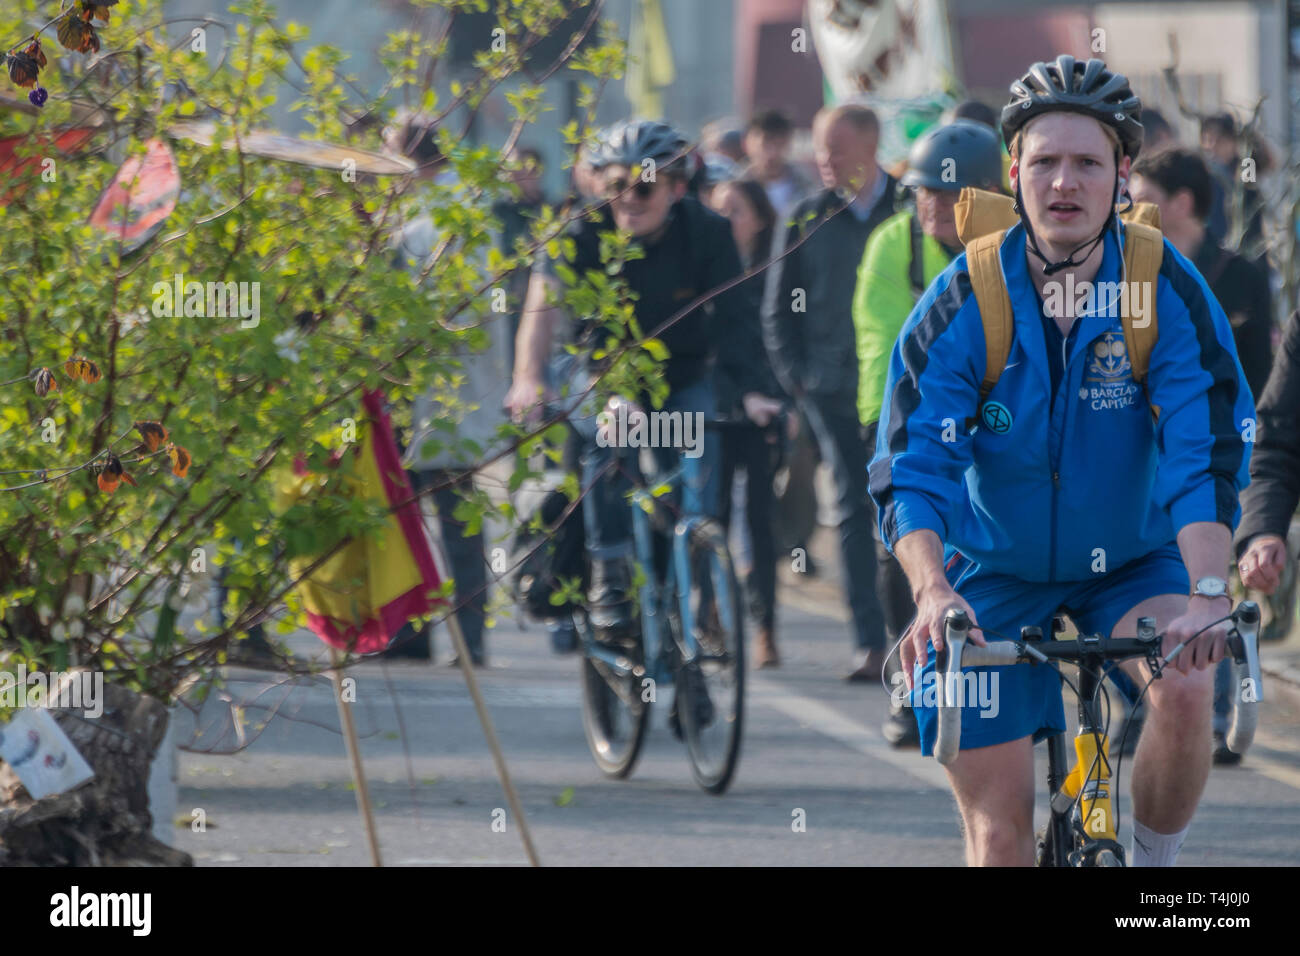 London, UK. 17th Apr 2019. Commuters have the unusal experience of passing the newly greened bridge - Morning on Waterloo Bridge sees the camp awake and commuters make their progress on foot and bike across the river - Day 3 - Protestors from Extinction Rebellion block several junctions in London as part of their ongoing protest to demand action by the UK Government on the 'climate chrisis'. The action is part of an international co-ordinated protest. Credit: Guy Bell/Alamy Live News Stock Photo